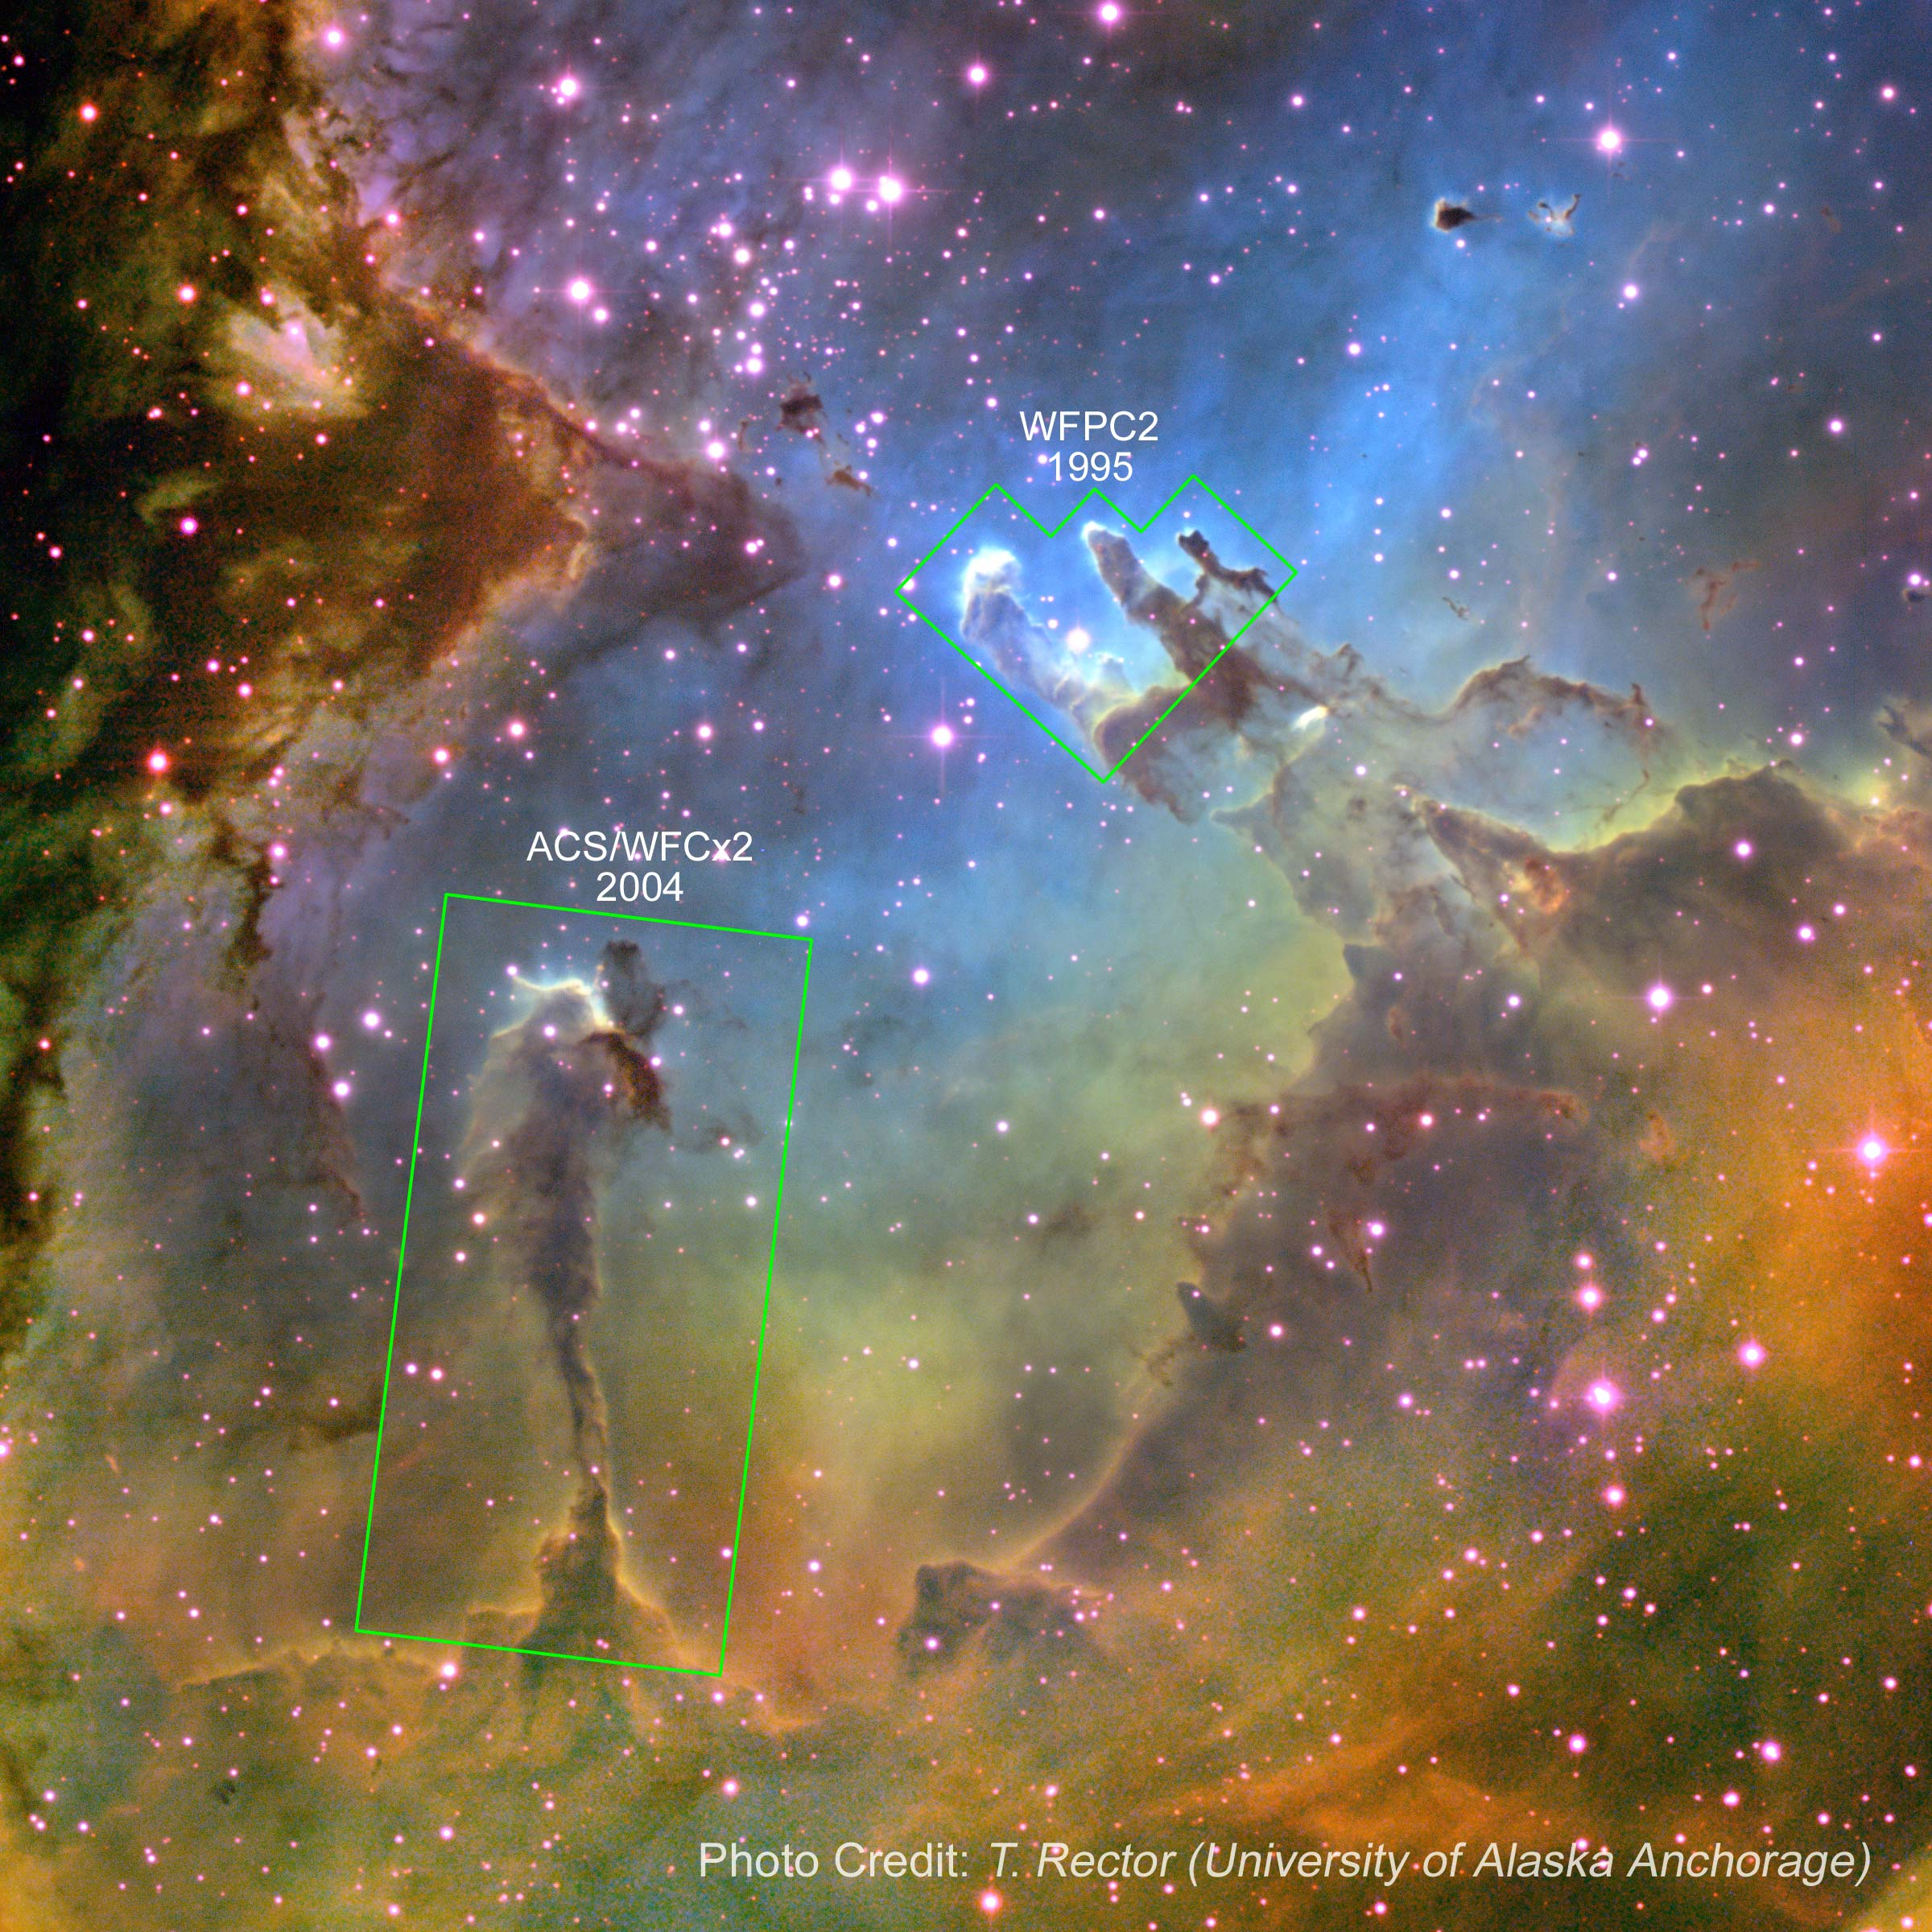 The Hubble Space Telescope Catalog contains more high resolution 2400x2400